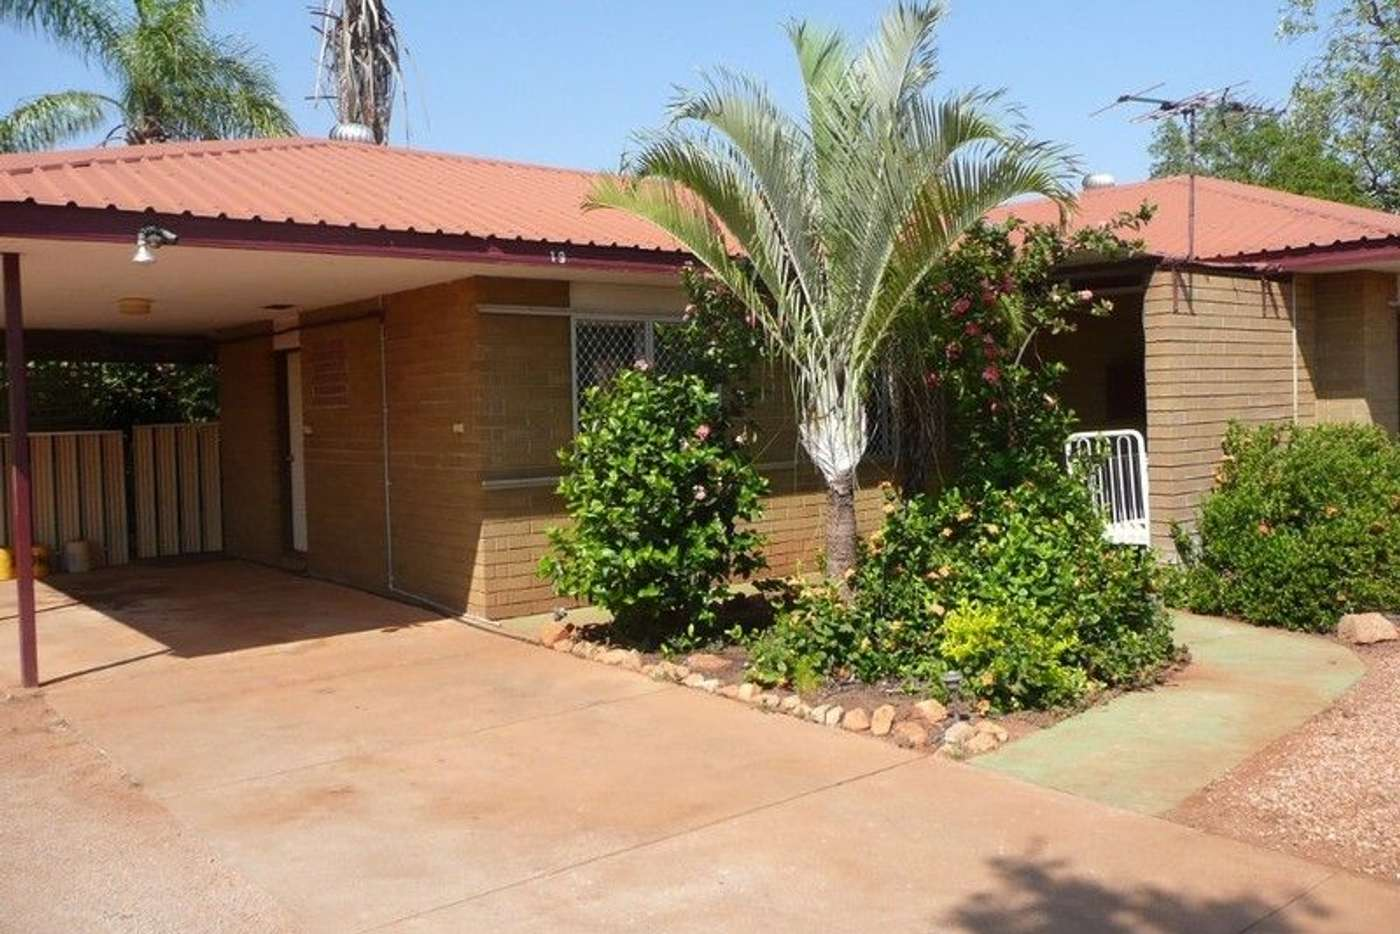 Main view of Homely house listing, 19 Curlew Crescent, South Hedland WA 6722